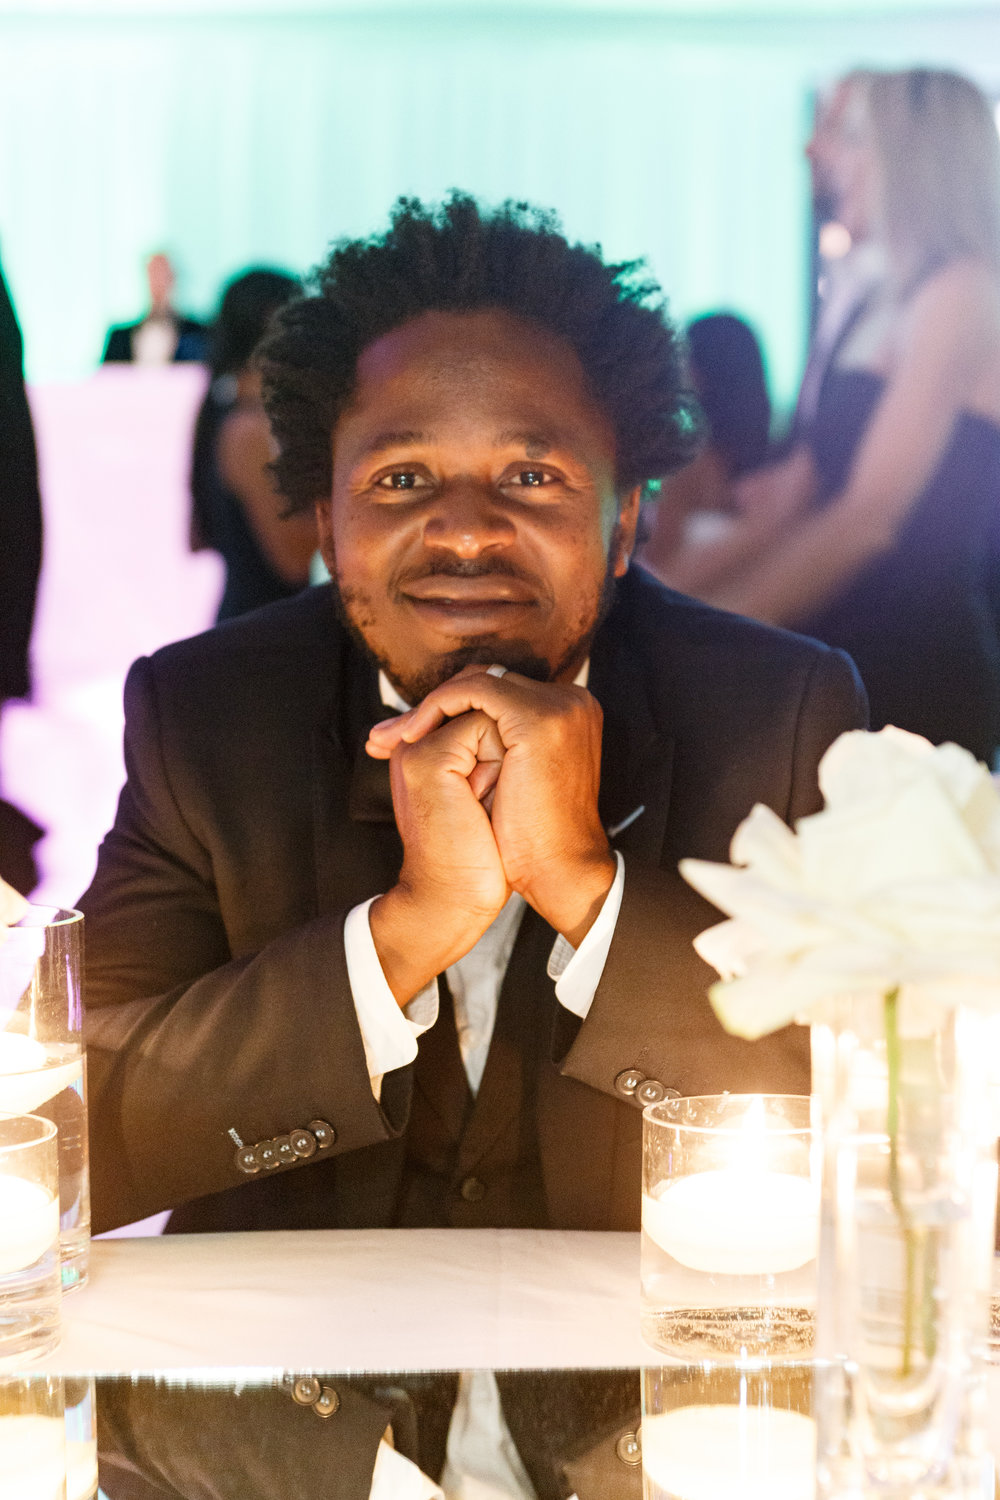 UNICEF Goodwill Ambassador Ishmael Beah (photo by Drew Altizer)